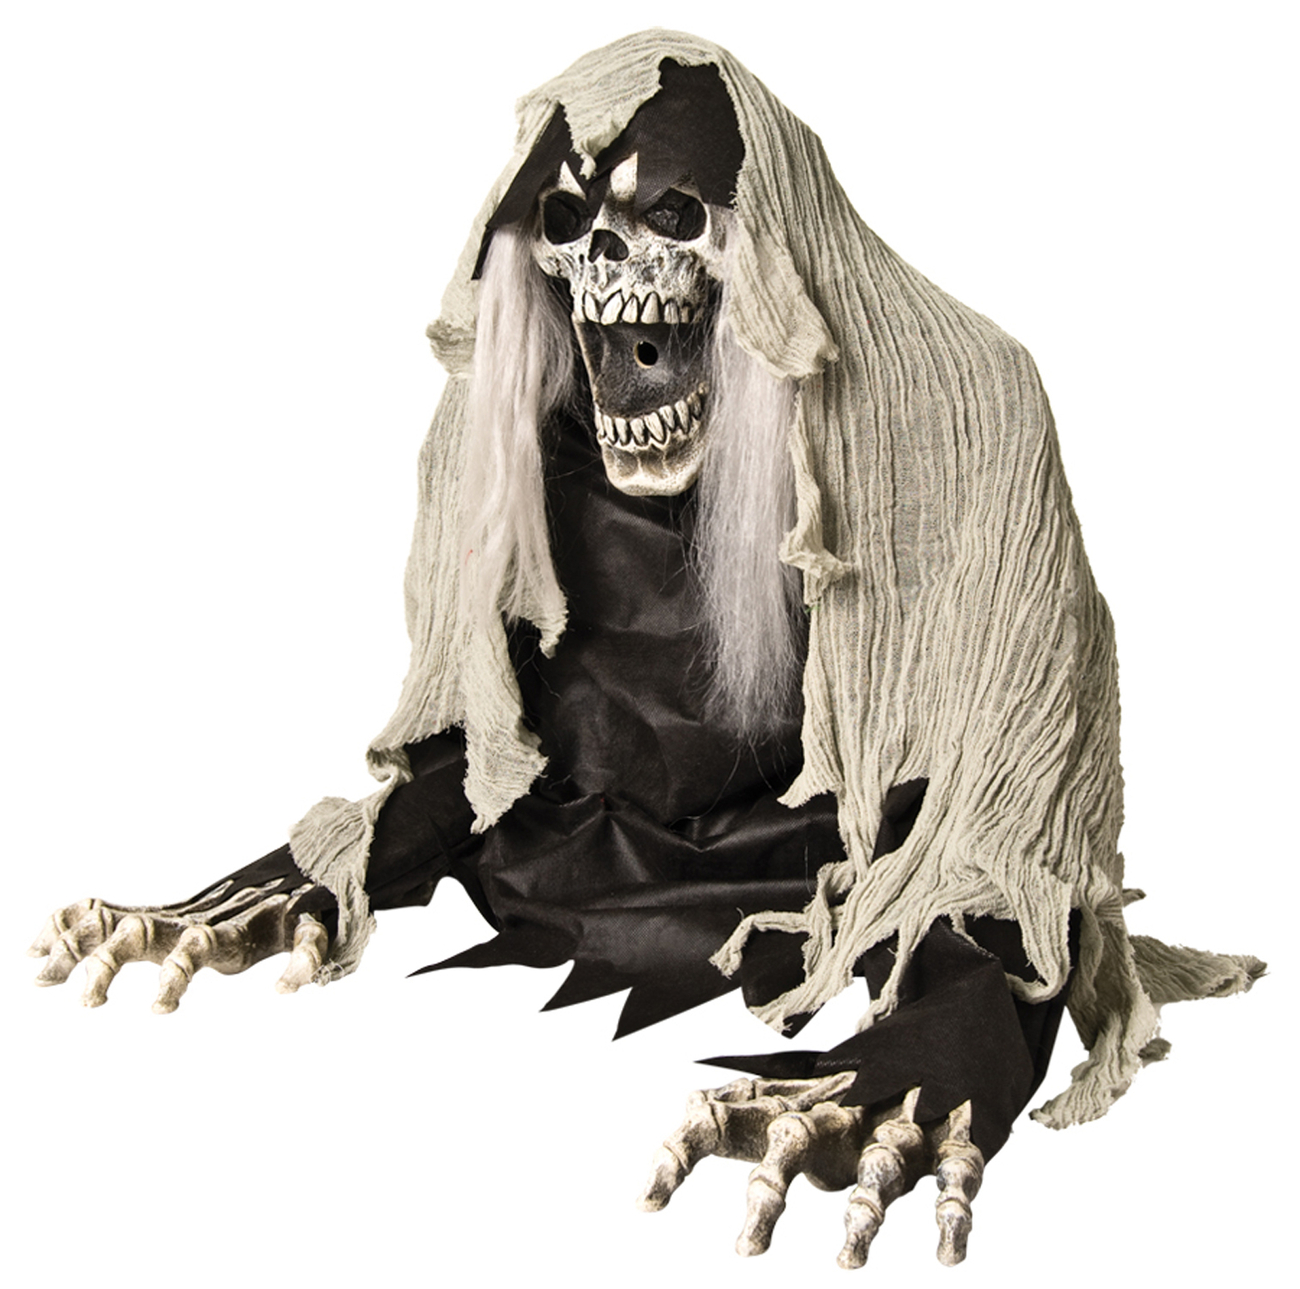 Life Size Reaper Demon ANIMATED ZOMBIE GHOUL Fog Machine Accessory Haunt FX Prop